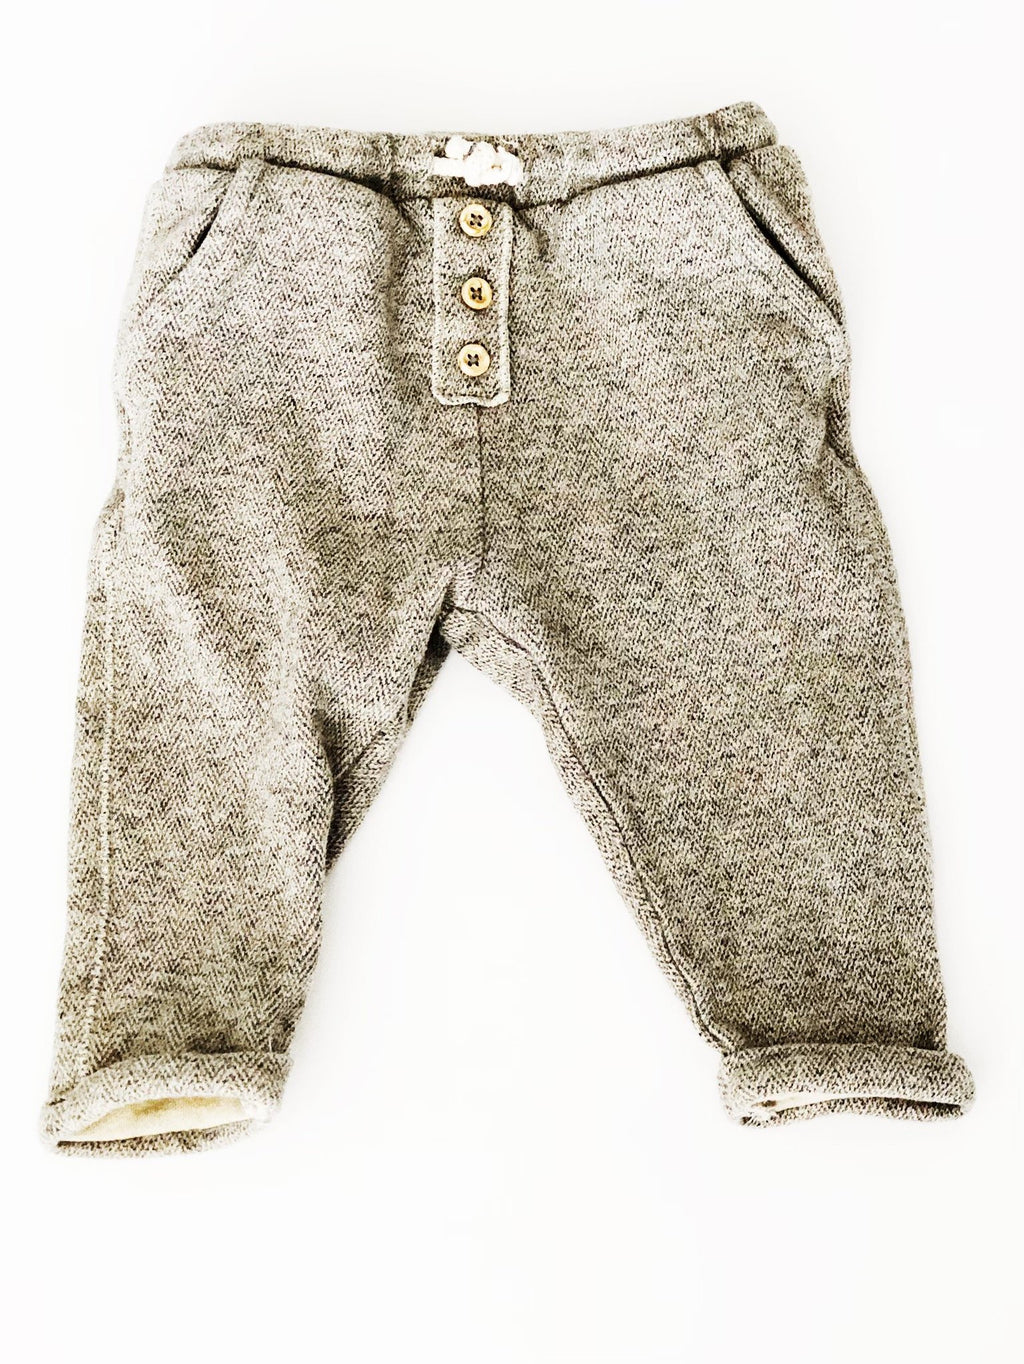 Zara bottoms - soft harems - 9-12m-Fresh Kids Inc.